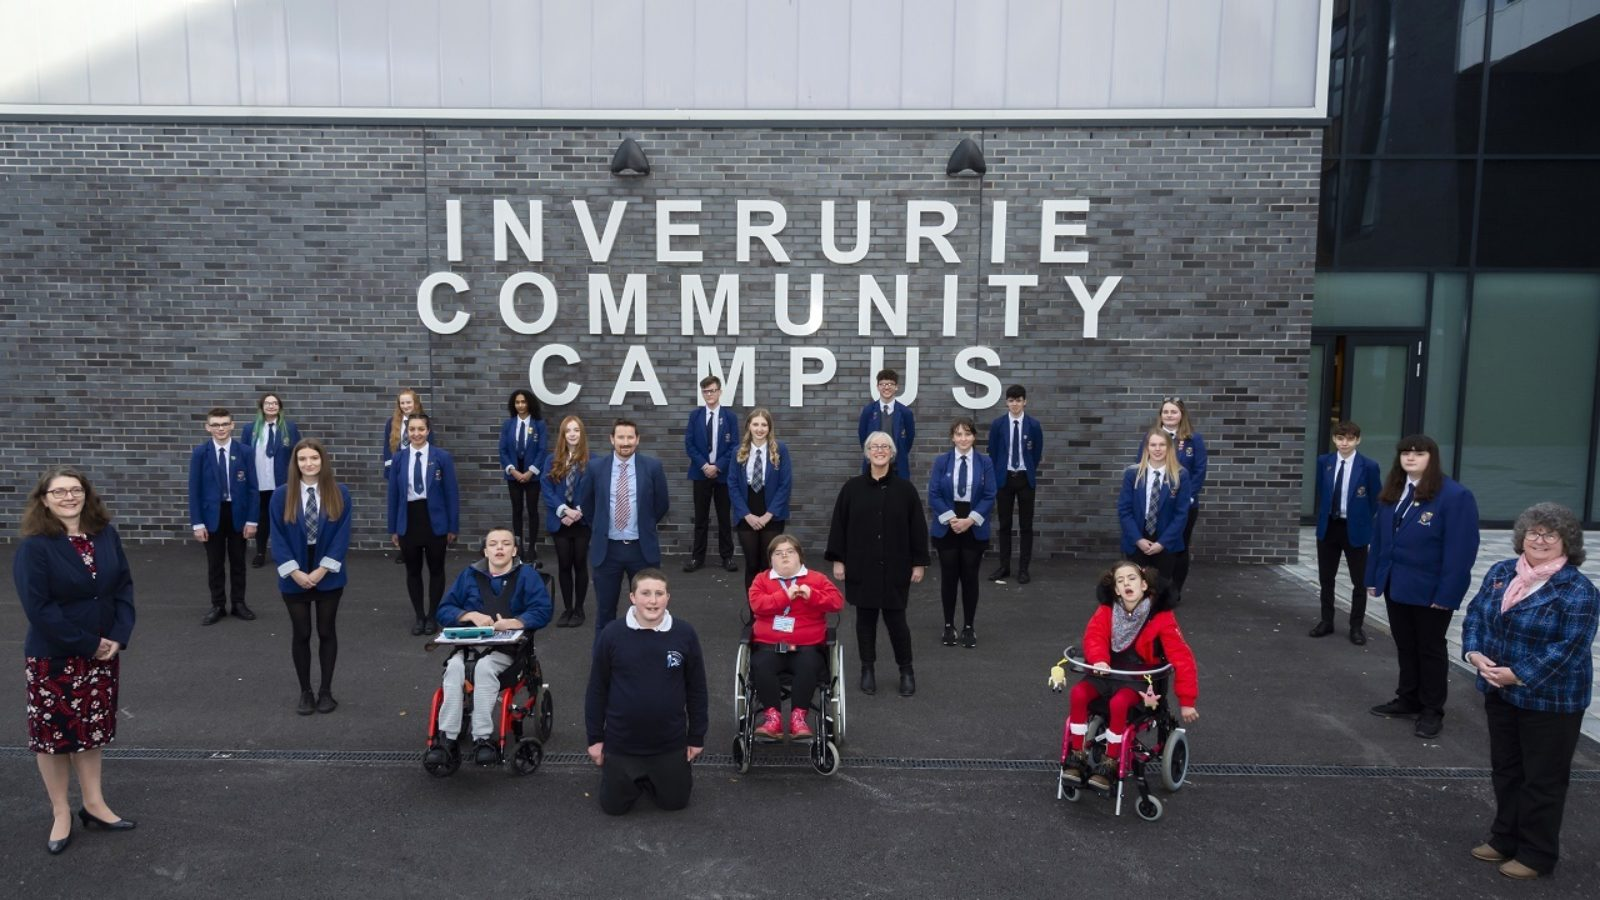 Inverurie Community Campus opens to Academy pupils